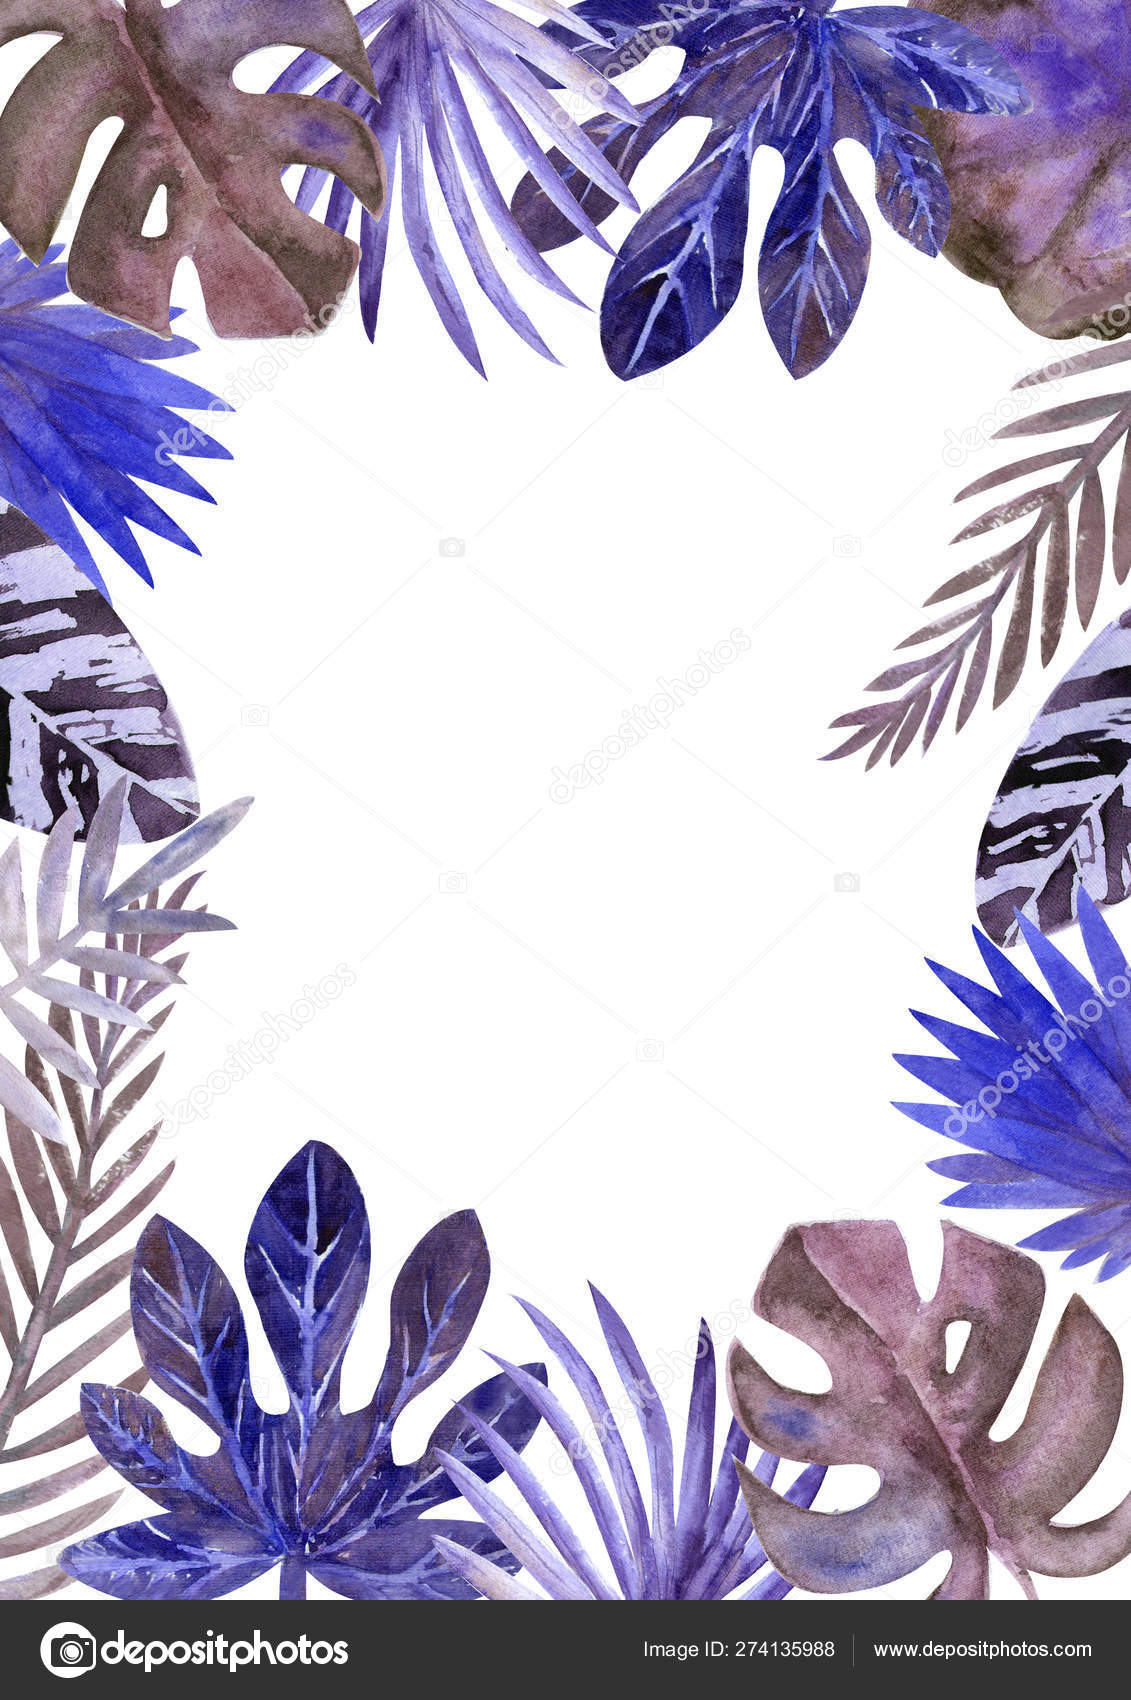 Watercolor Frame Of Colorful Tropical Leaves For Invitations Greeting Cards And Wallpapers Blue Tone Stock Photo C Natika26042002 Gmail Com 274135988 All over banana palm leaves with teal and blue undertones. watercolor frame of colorful tropical leaves for invitations greeting cards and wallpapers blue tone stock photo c natika26042002 gmail com 274135988